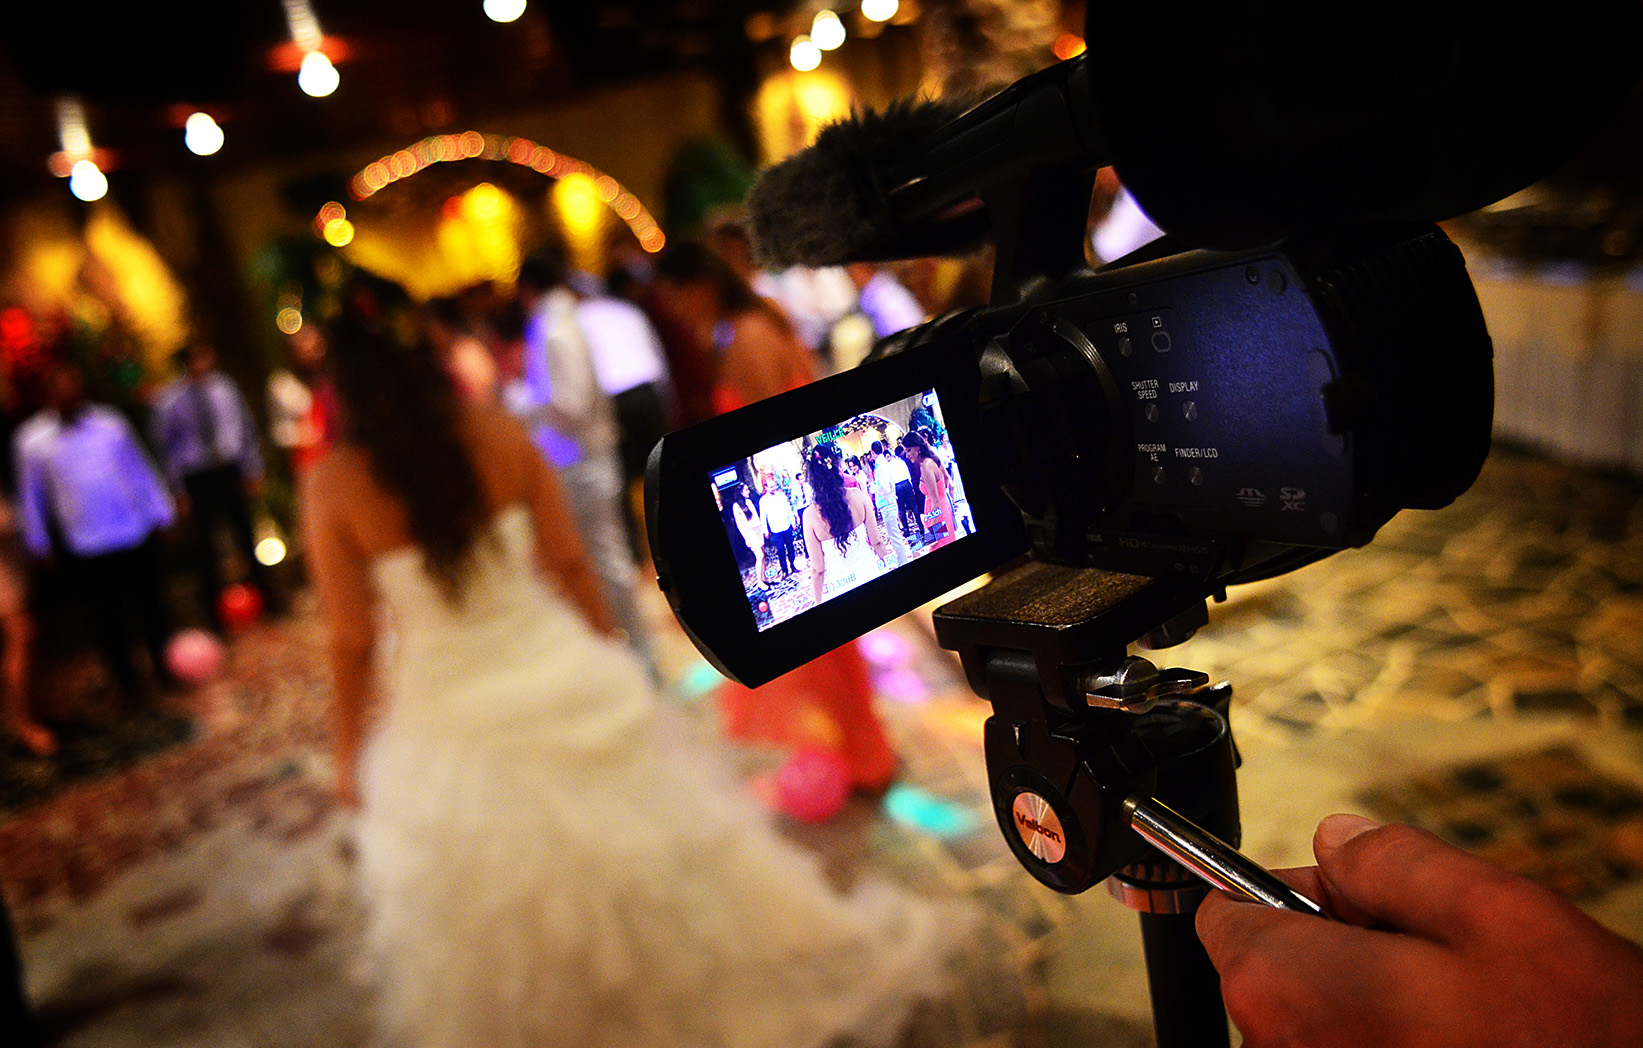 photo et video de mariage en Suisse